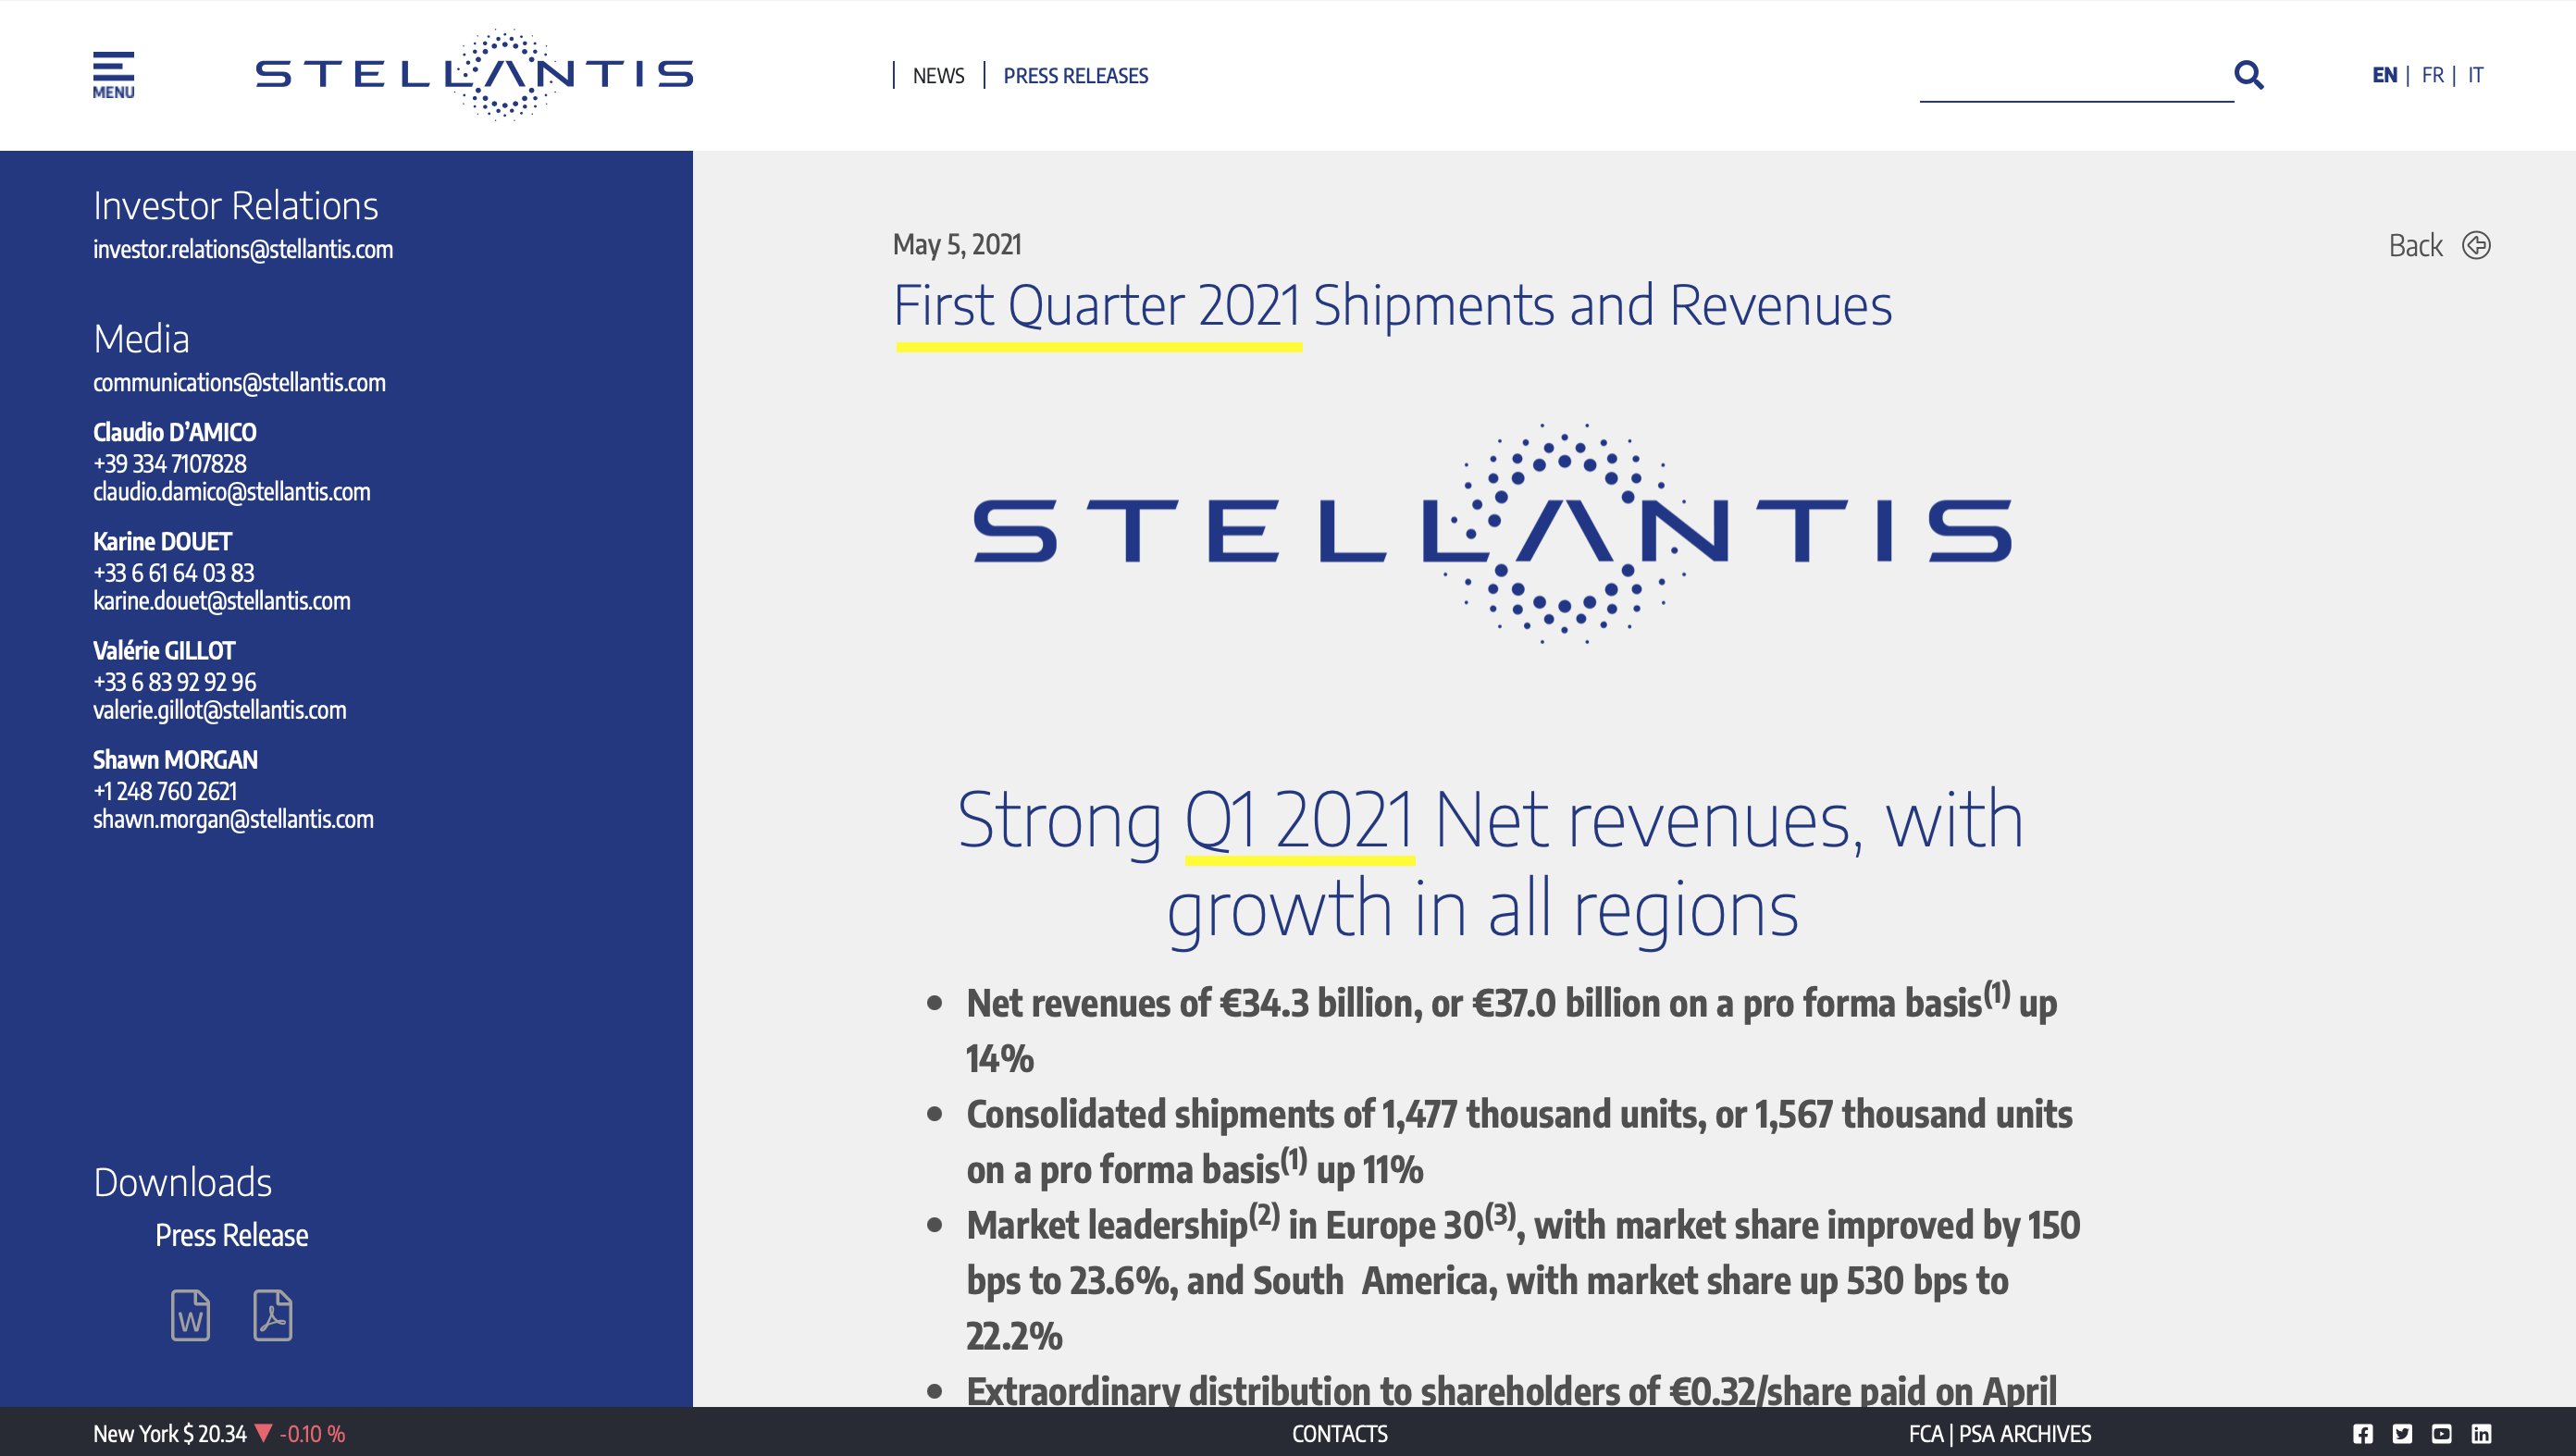 example of proper quarter abbreviation from a press release from the company STELLANTIS: First Quarter 2021 and Q1 2021